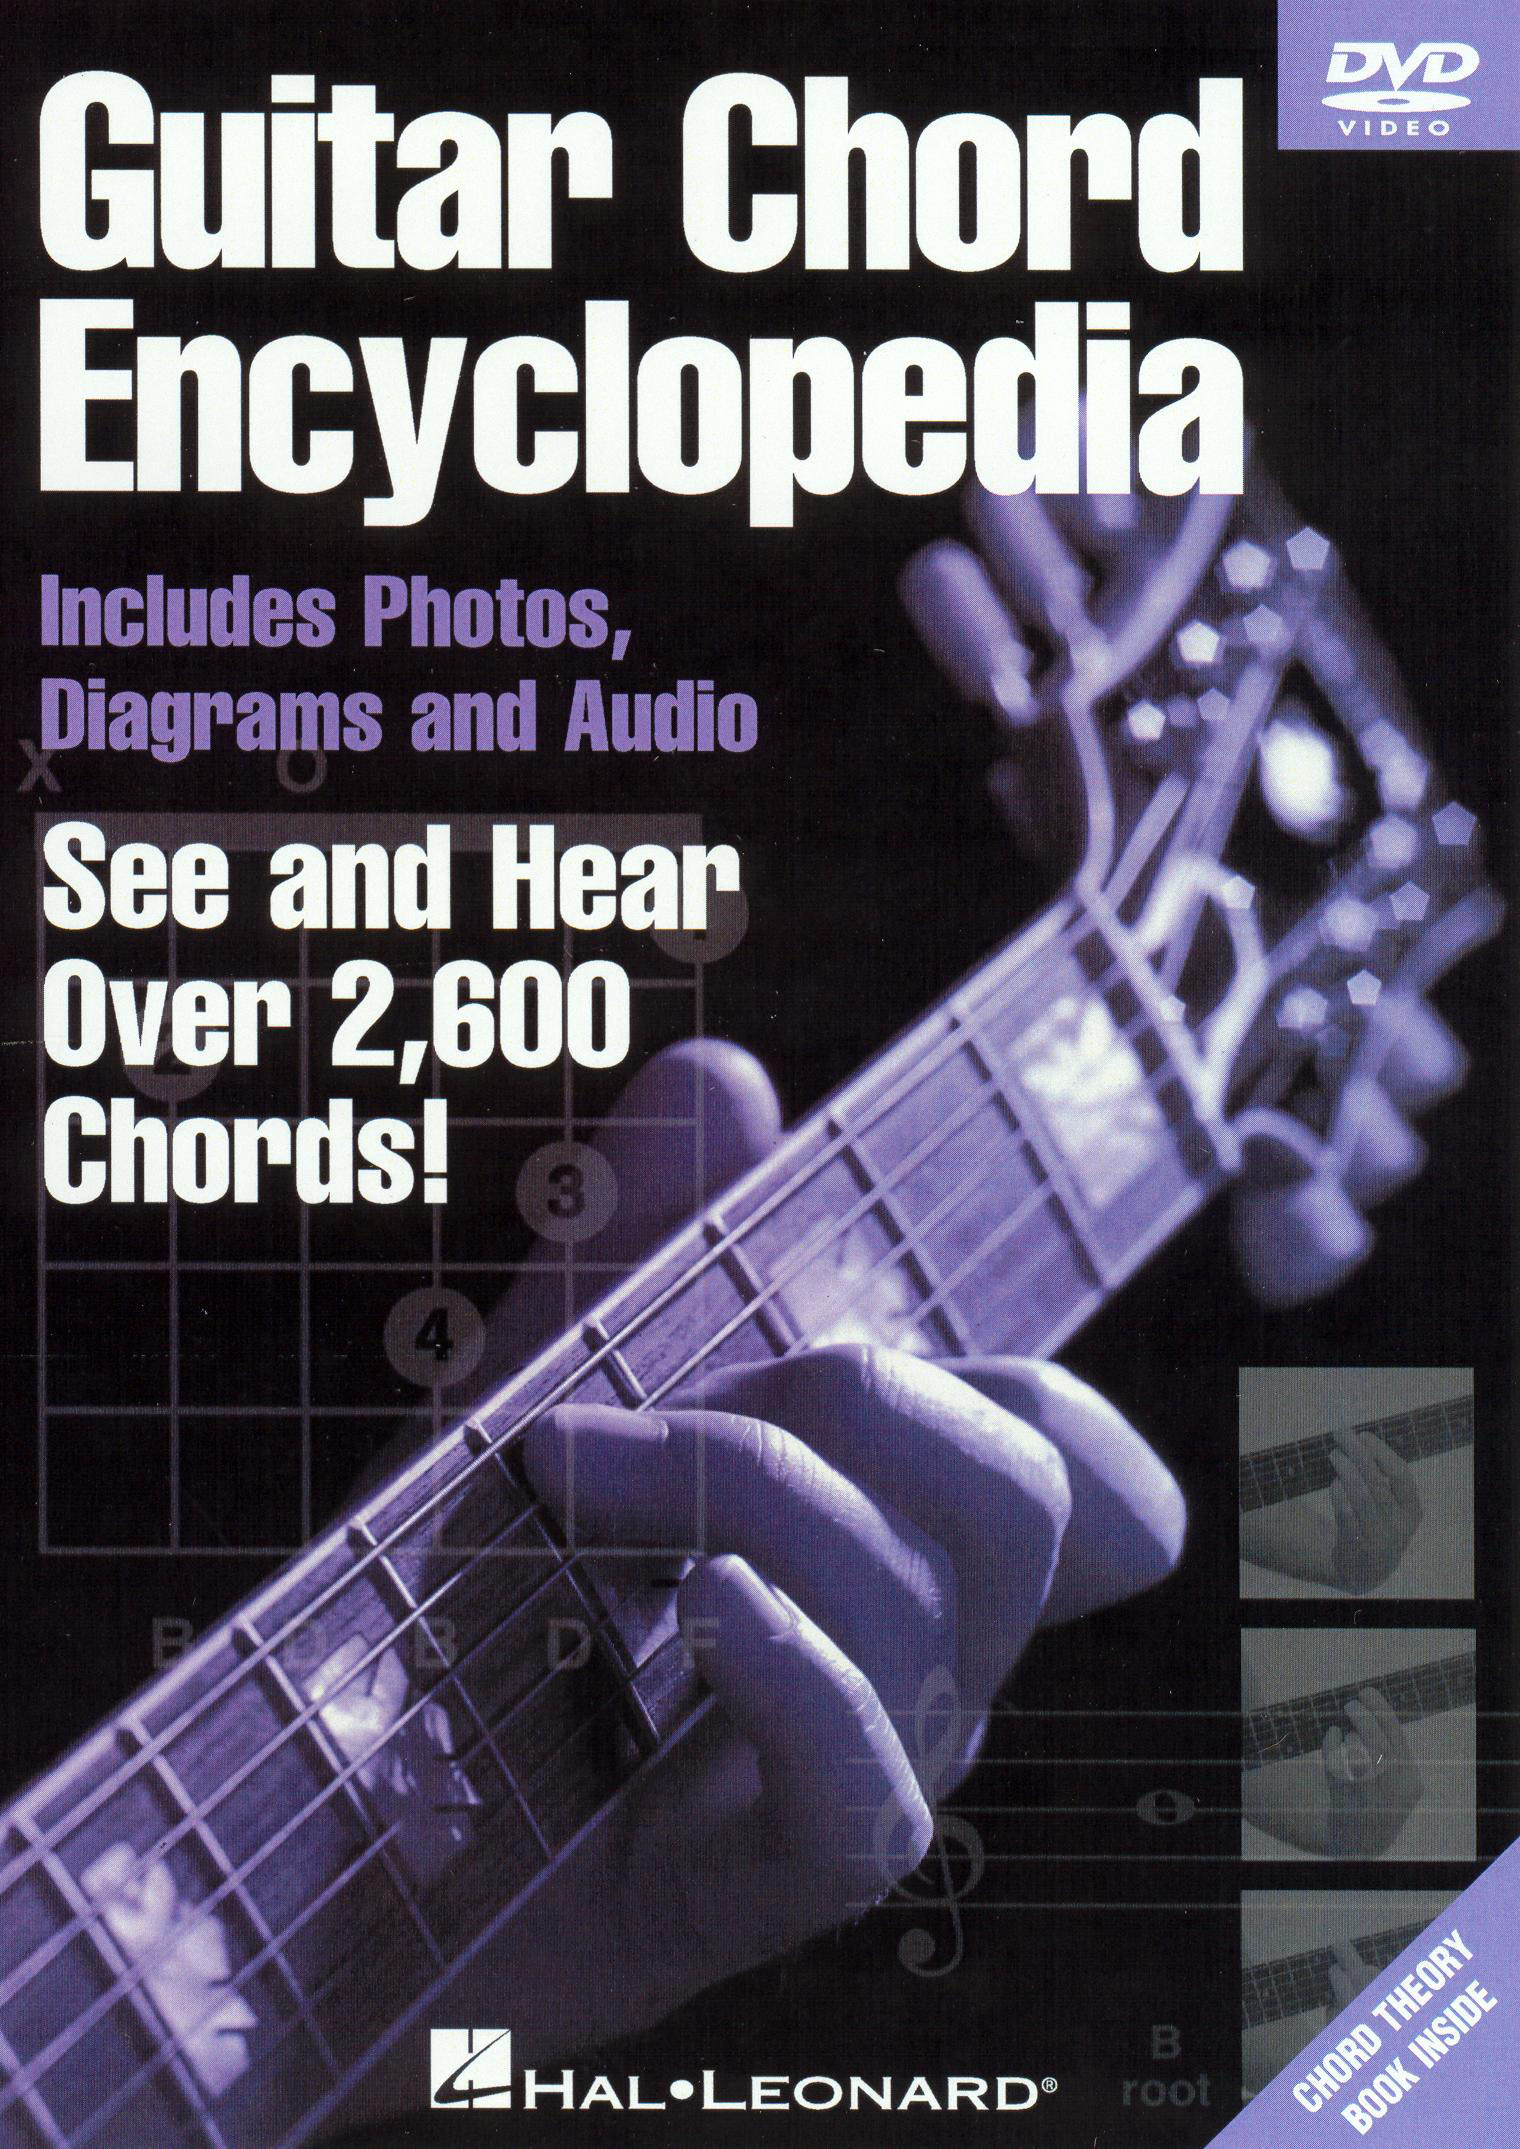 Guitar Chord Encylopedia